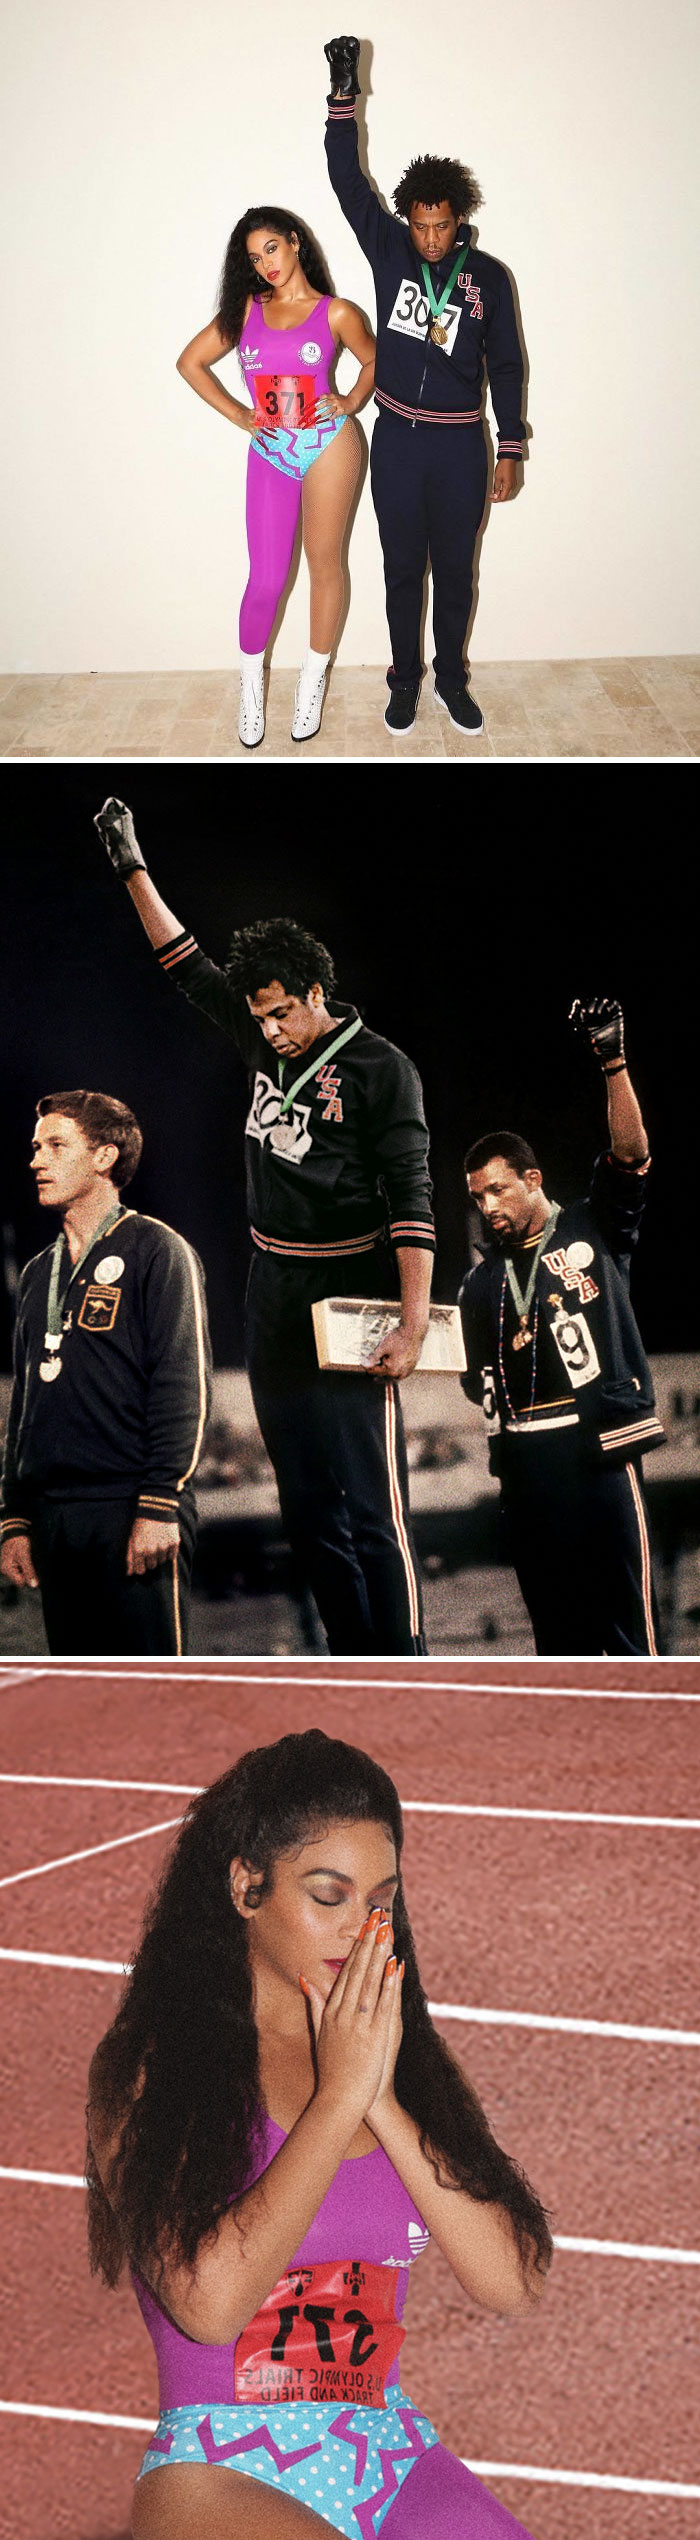 Beyoncé As Olympian Florence Griffith Joyner And Jay-Z As Tommie Smith